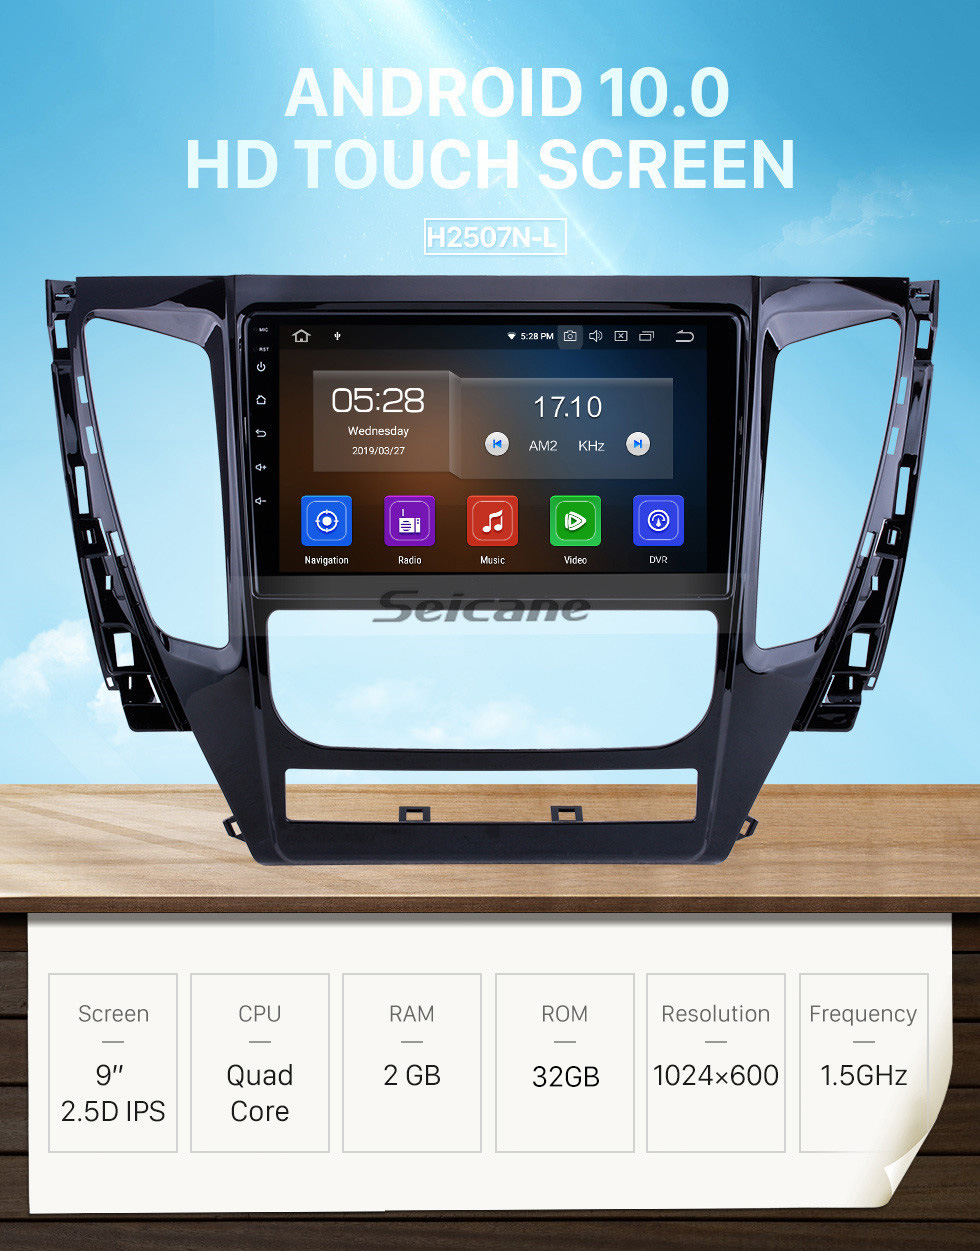 Seicane HD Touchscreen for 2015 2016 2017 Mitsubishi Pajero Sport Radio Android 10.0 9 inch GPS Navigation System Bluetooth Carplay support DAB+